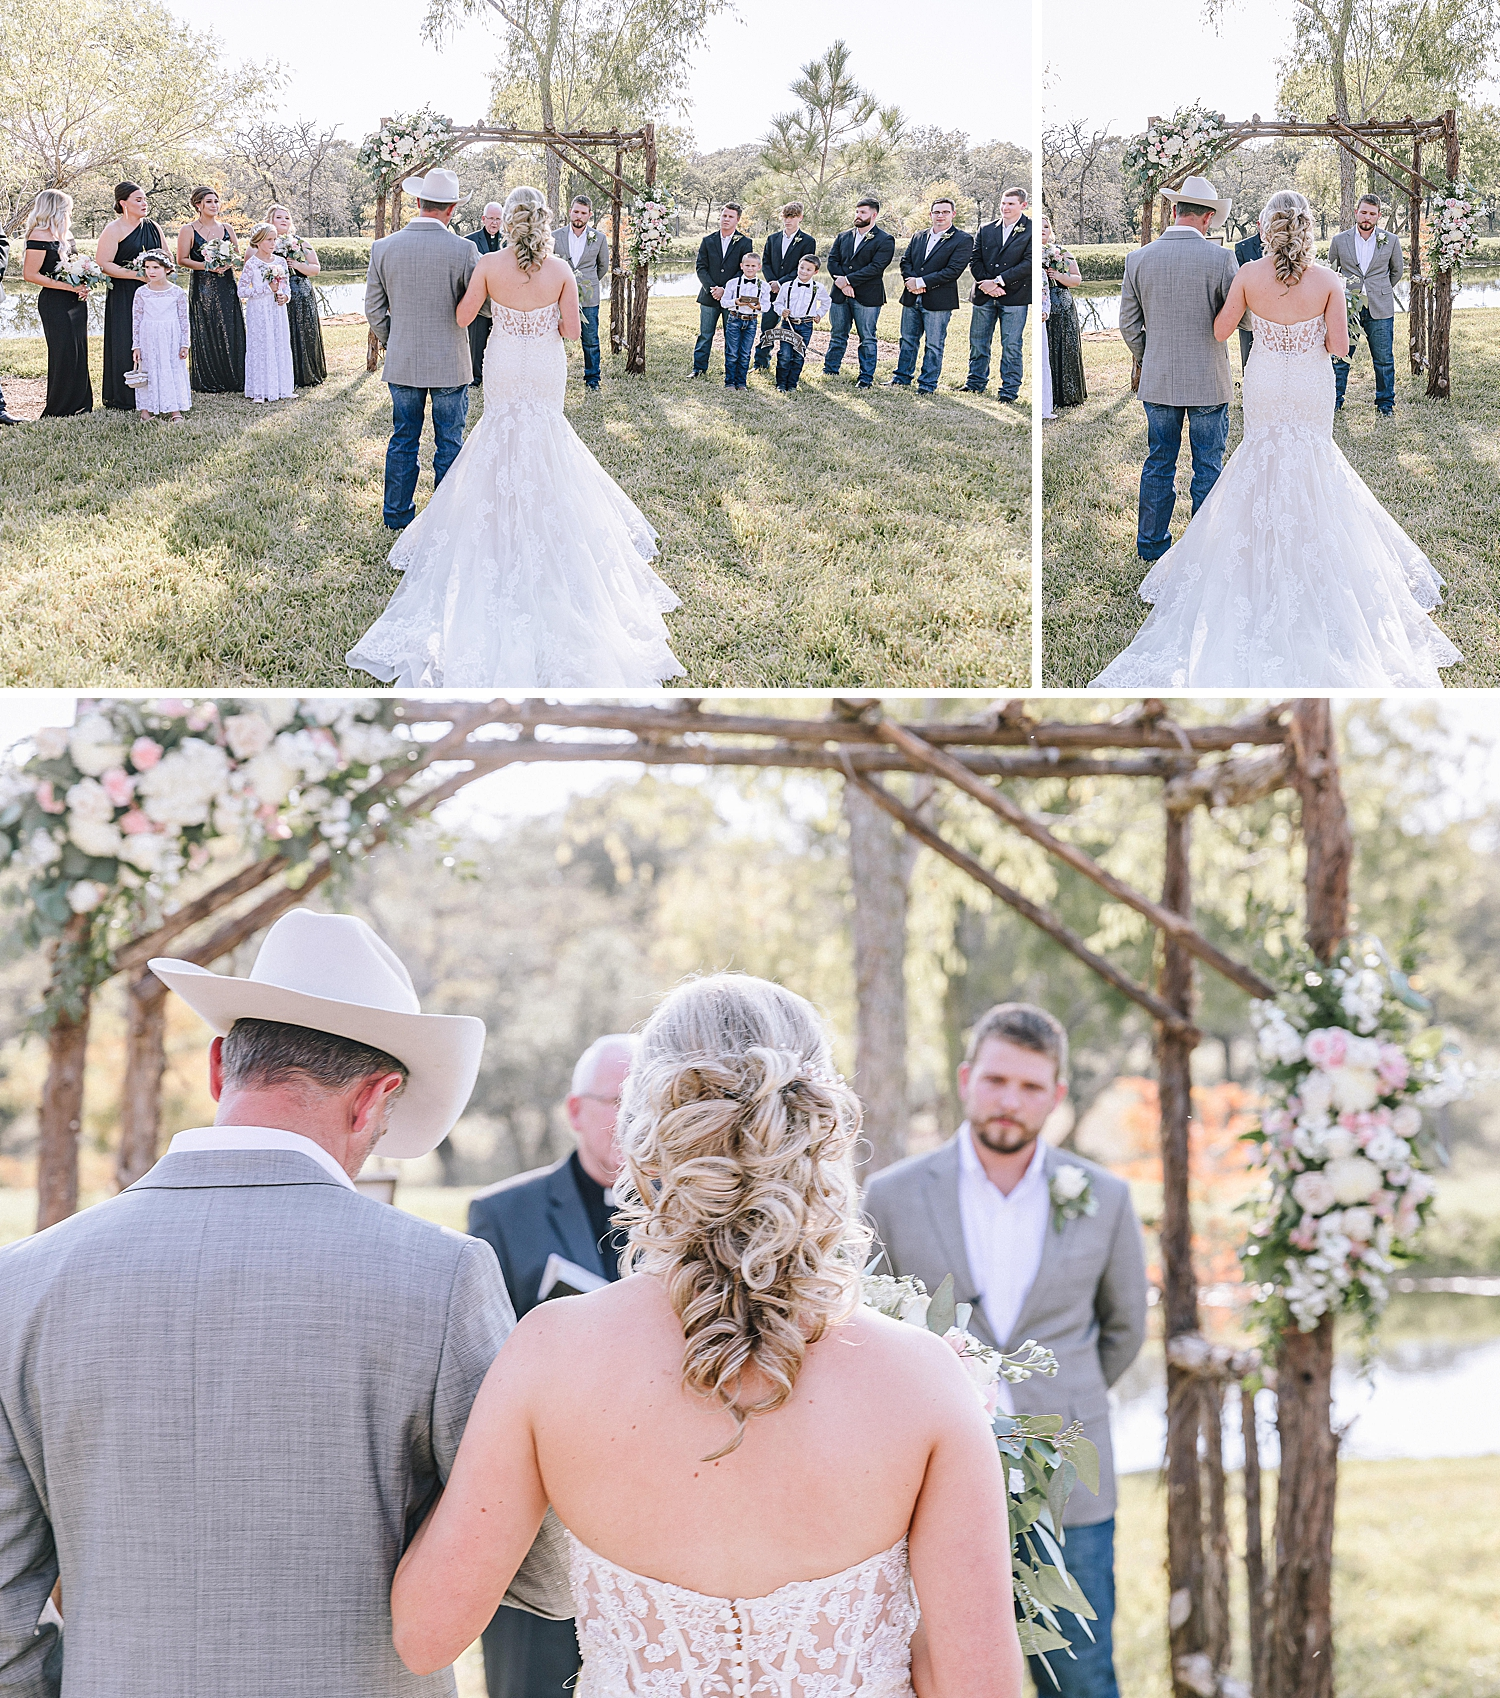 Rackler-Ranch-LaVernia-Texas-Wedding-Carly-Barton-Photography_0073.jpg